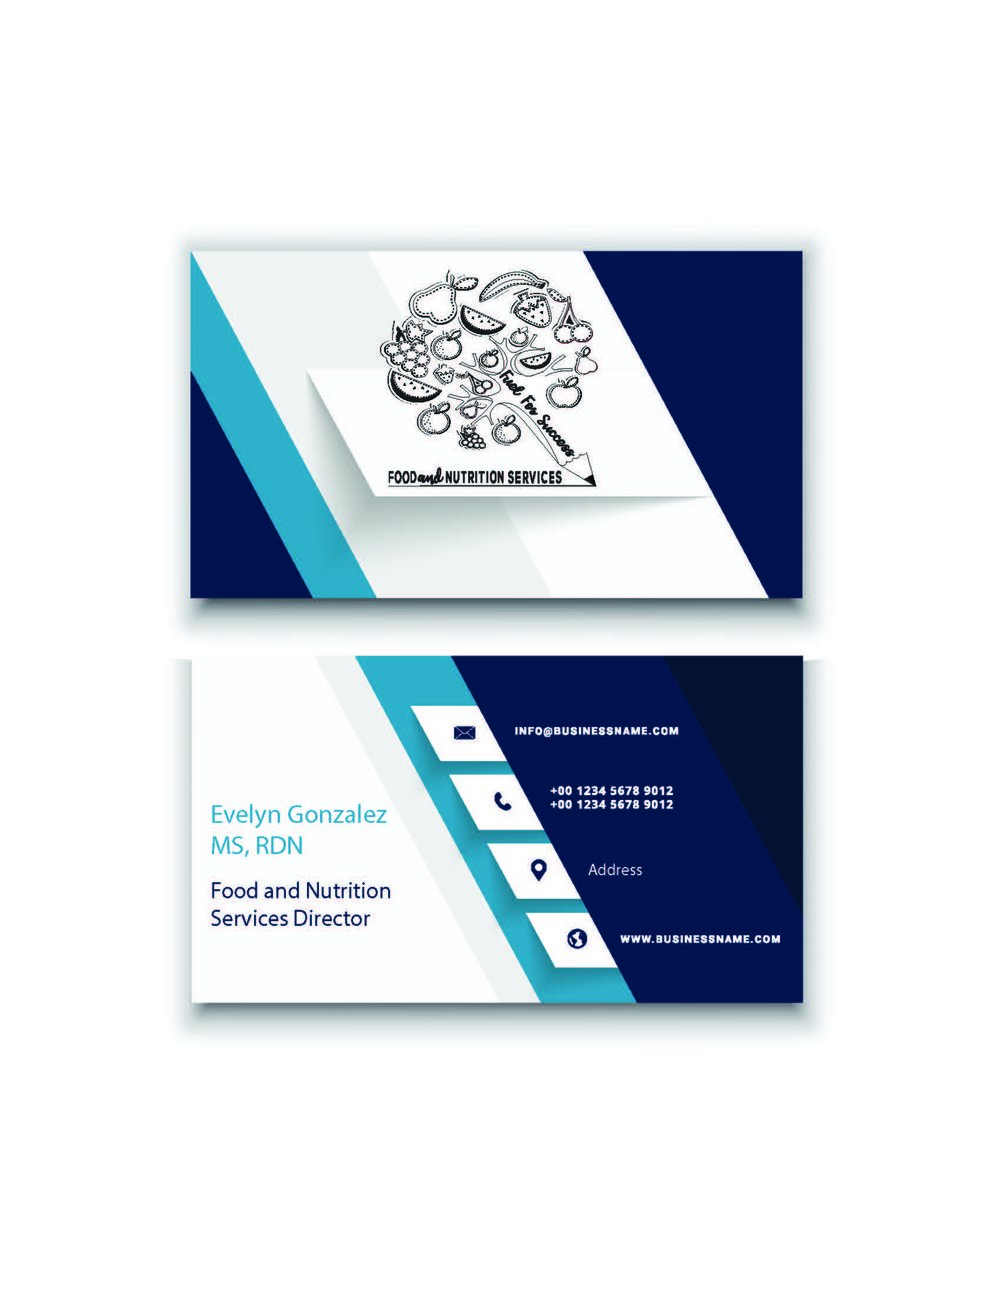 Business cards evelyn gonzalez cardg reheart Image collections